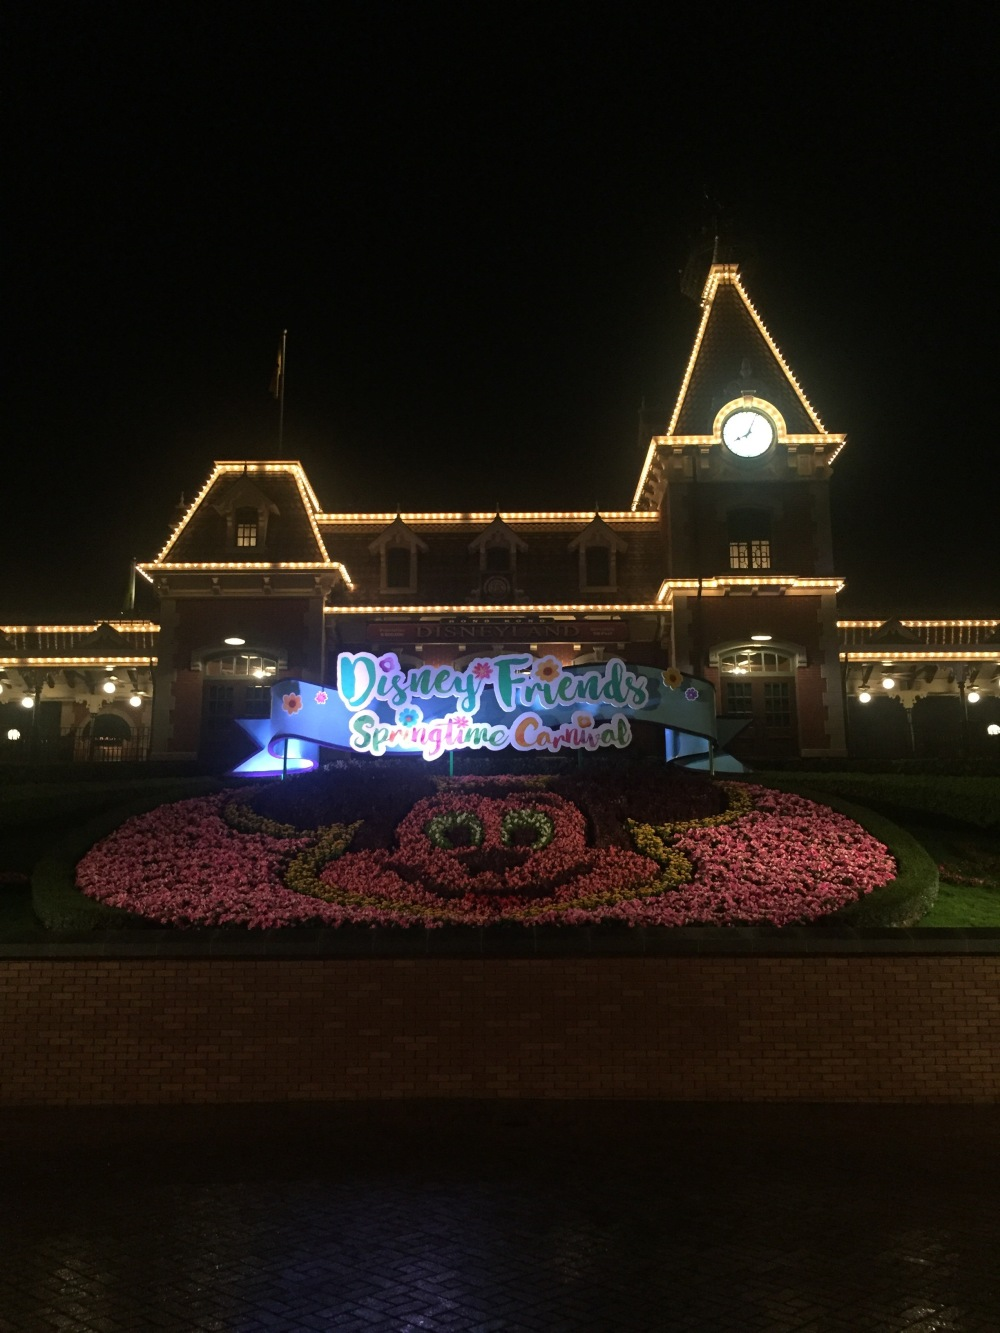 The Hong Kong Disneyland train station